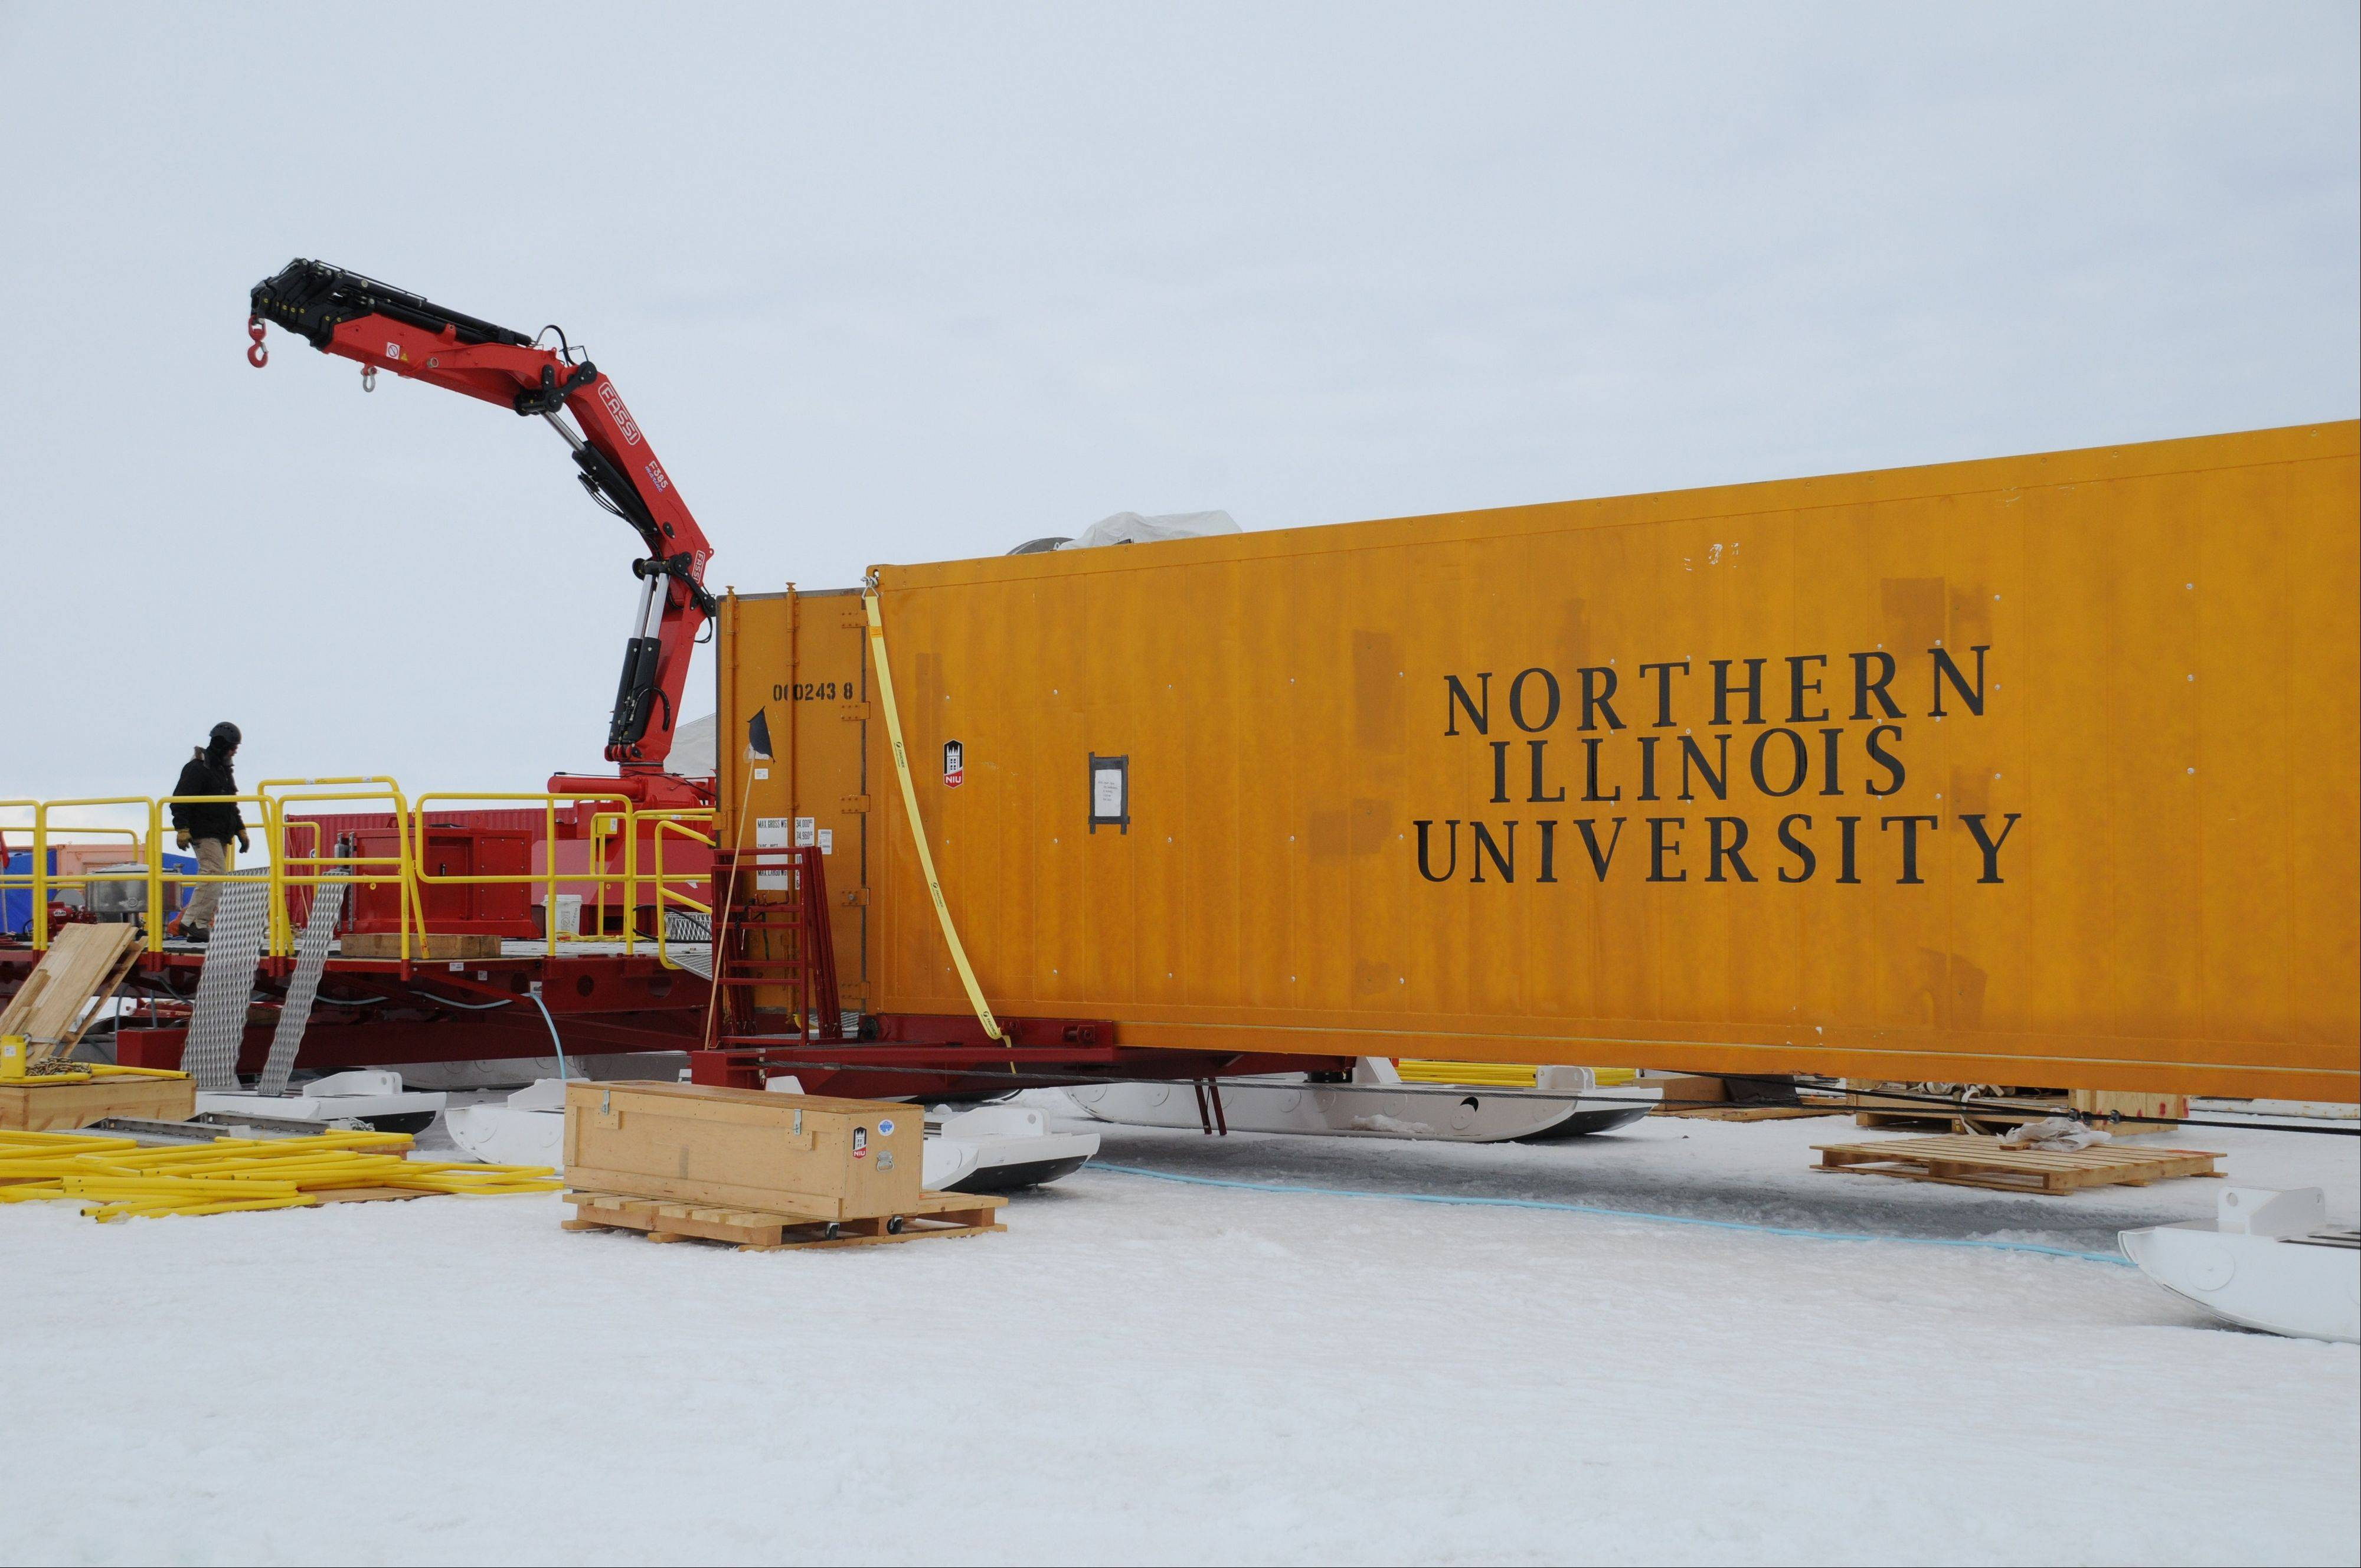 A shipping container houses a workshop for scientists and engineers in January 2013 at subglacial Lake Whillans in Antarctica. A Northern Illinois University team's trip this year is in jeopardy due to the partial federal government shutdown.